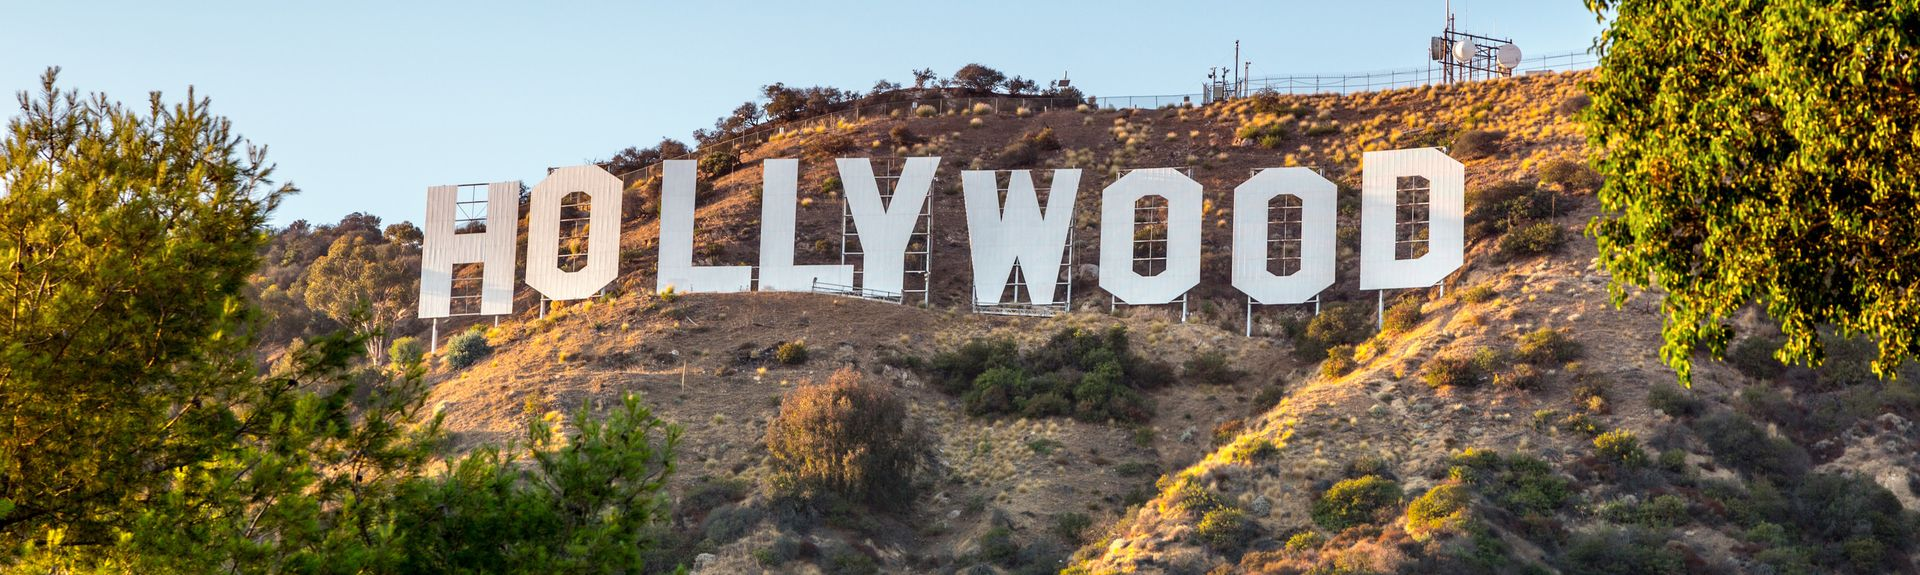 Hollywood, Los Angeles, Californie, États-Unis d'Amérique